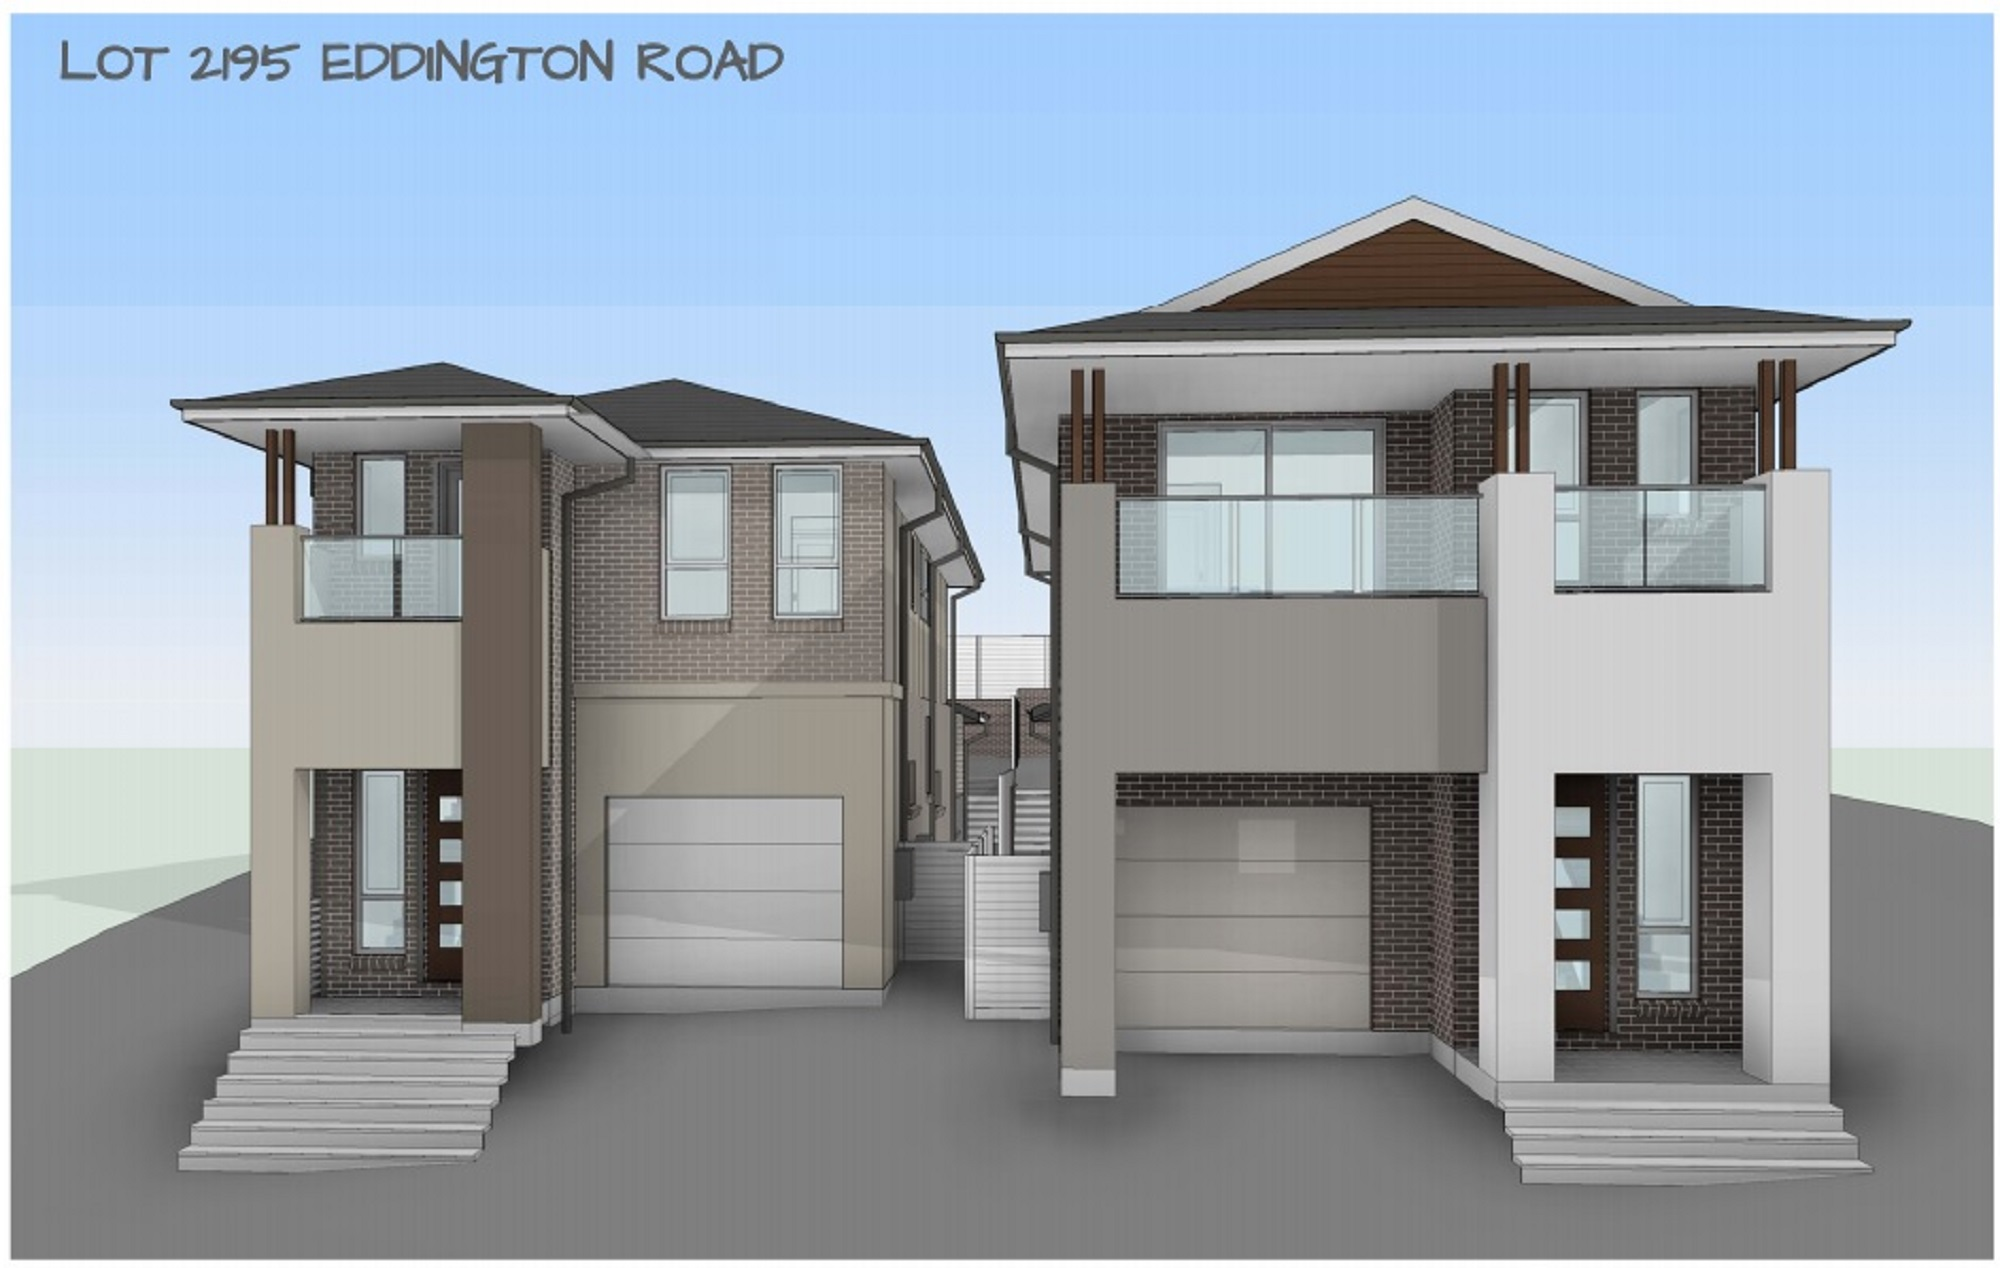 Sold [Lot 2195] 13 Eddington Road Campbelltown NSW